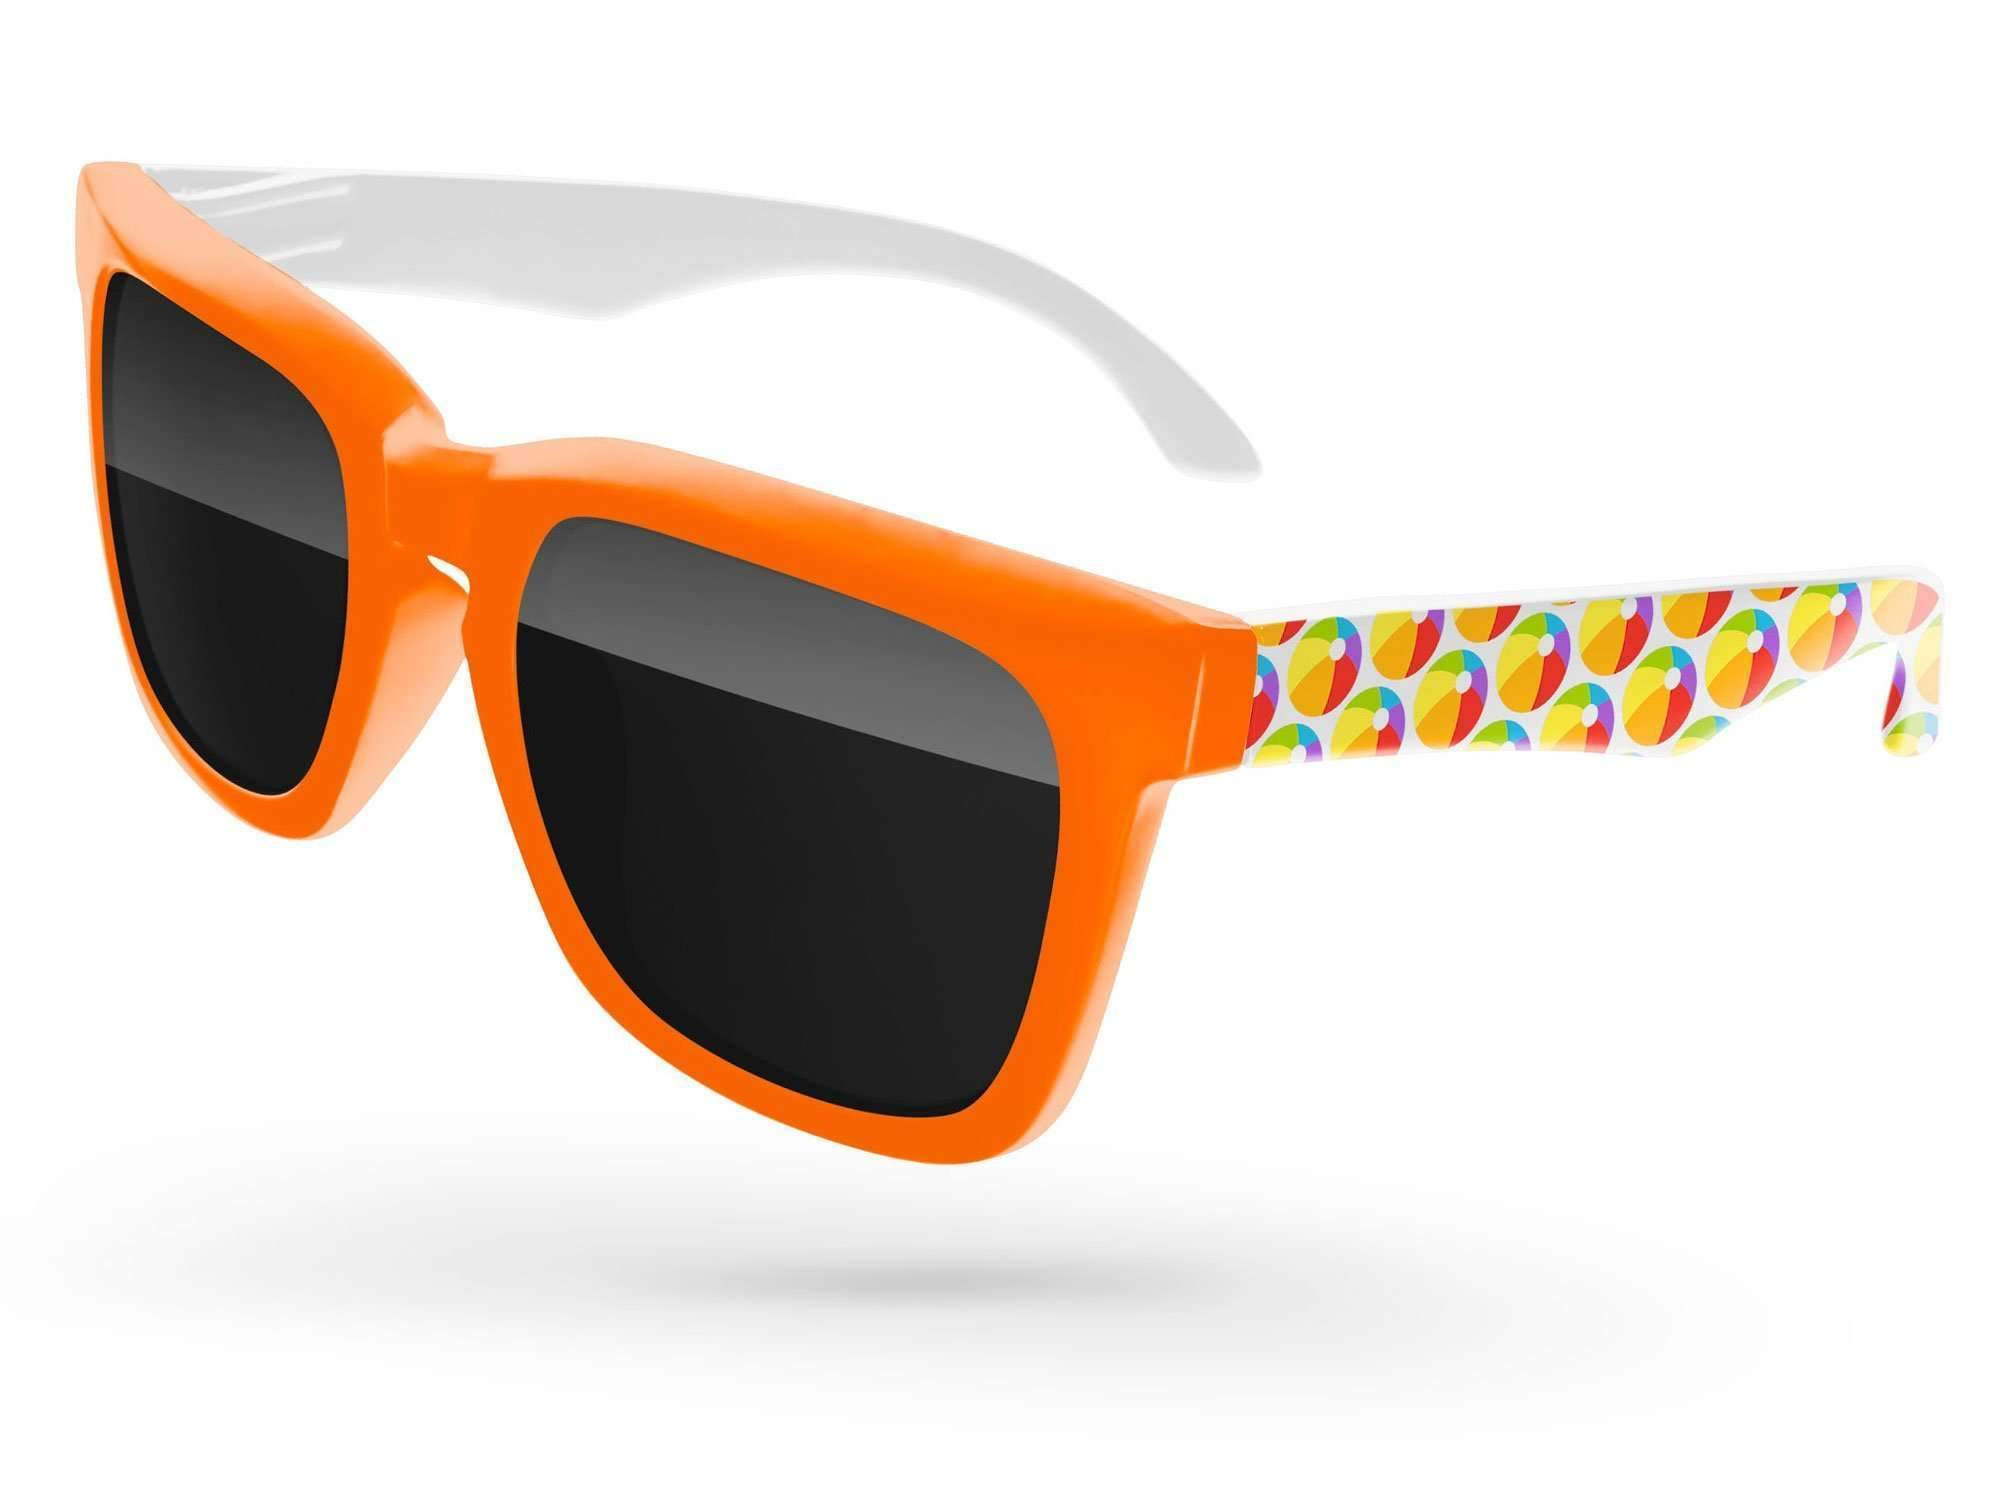 BD052 - 2-tone Bold Promotional Sunglasses w/ arms heat transfer